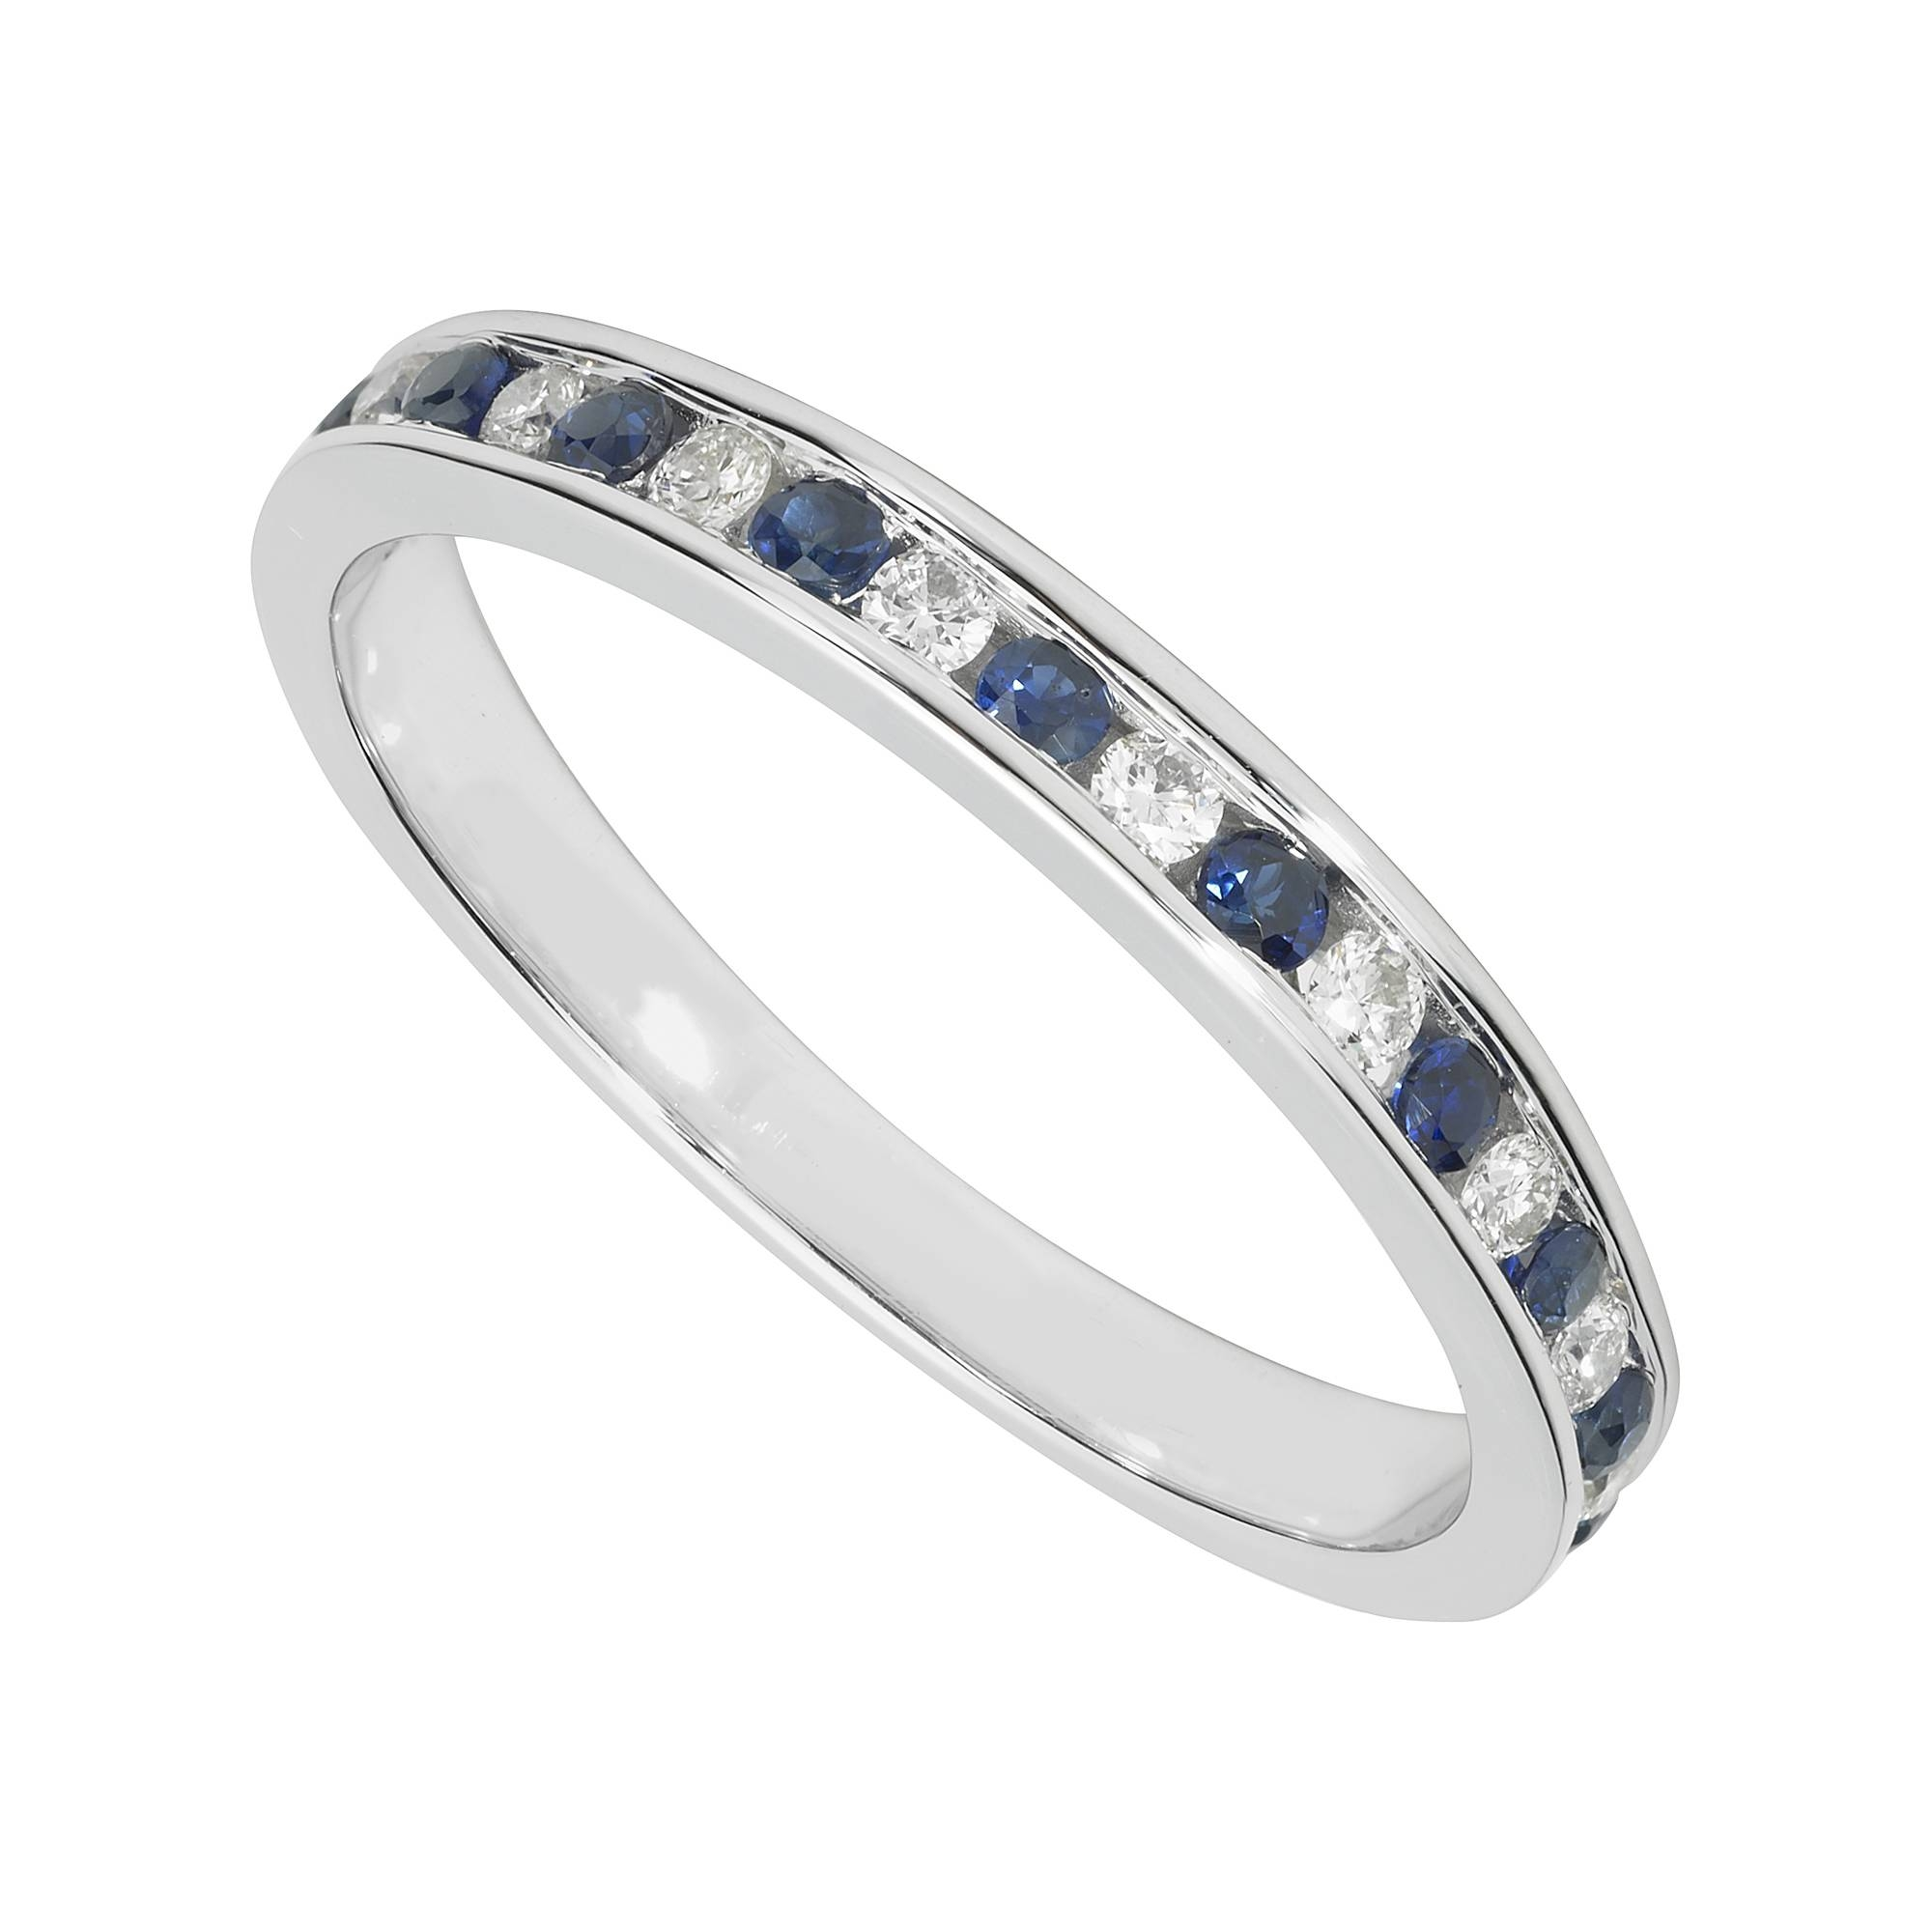 Ladies' 9ct White Gold Diamond And Sapphire Wedding Ring Within Most Recent Blue Sapphire Anniversary Rings (View 18 of 25)